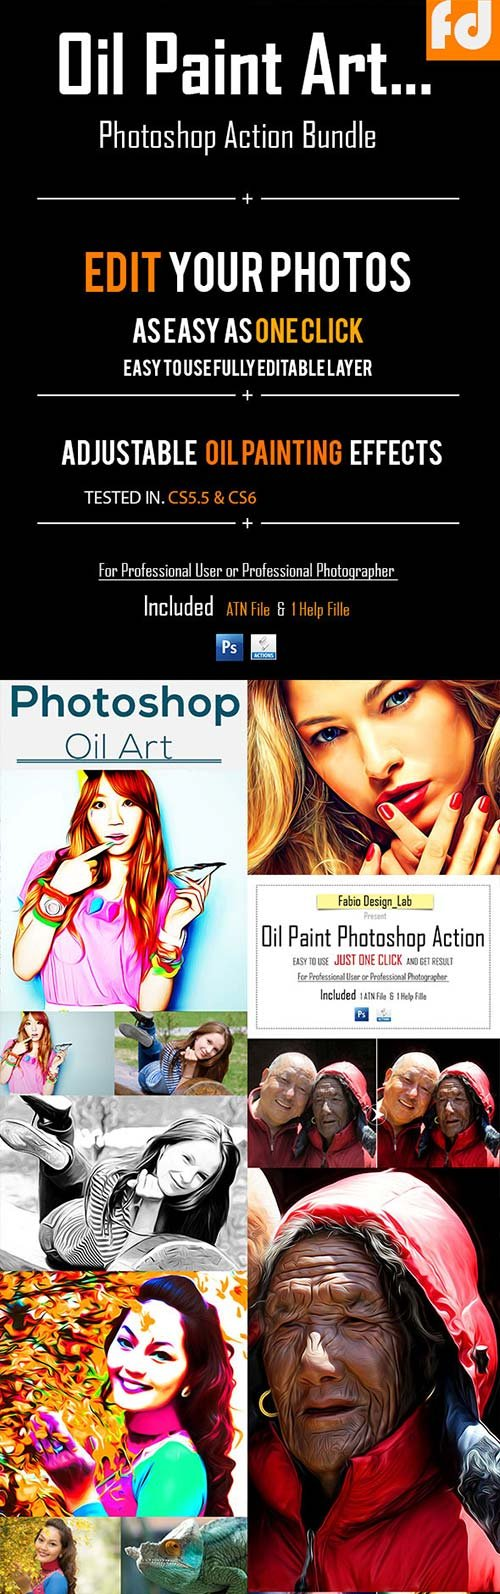 GraphicRiver Oil Paint Art Photoshop Action Bundle